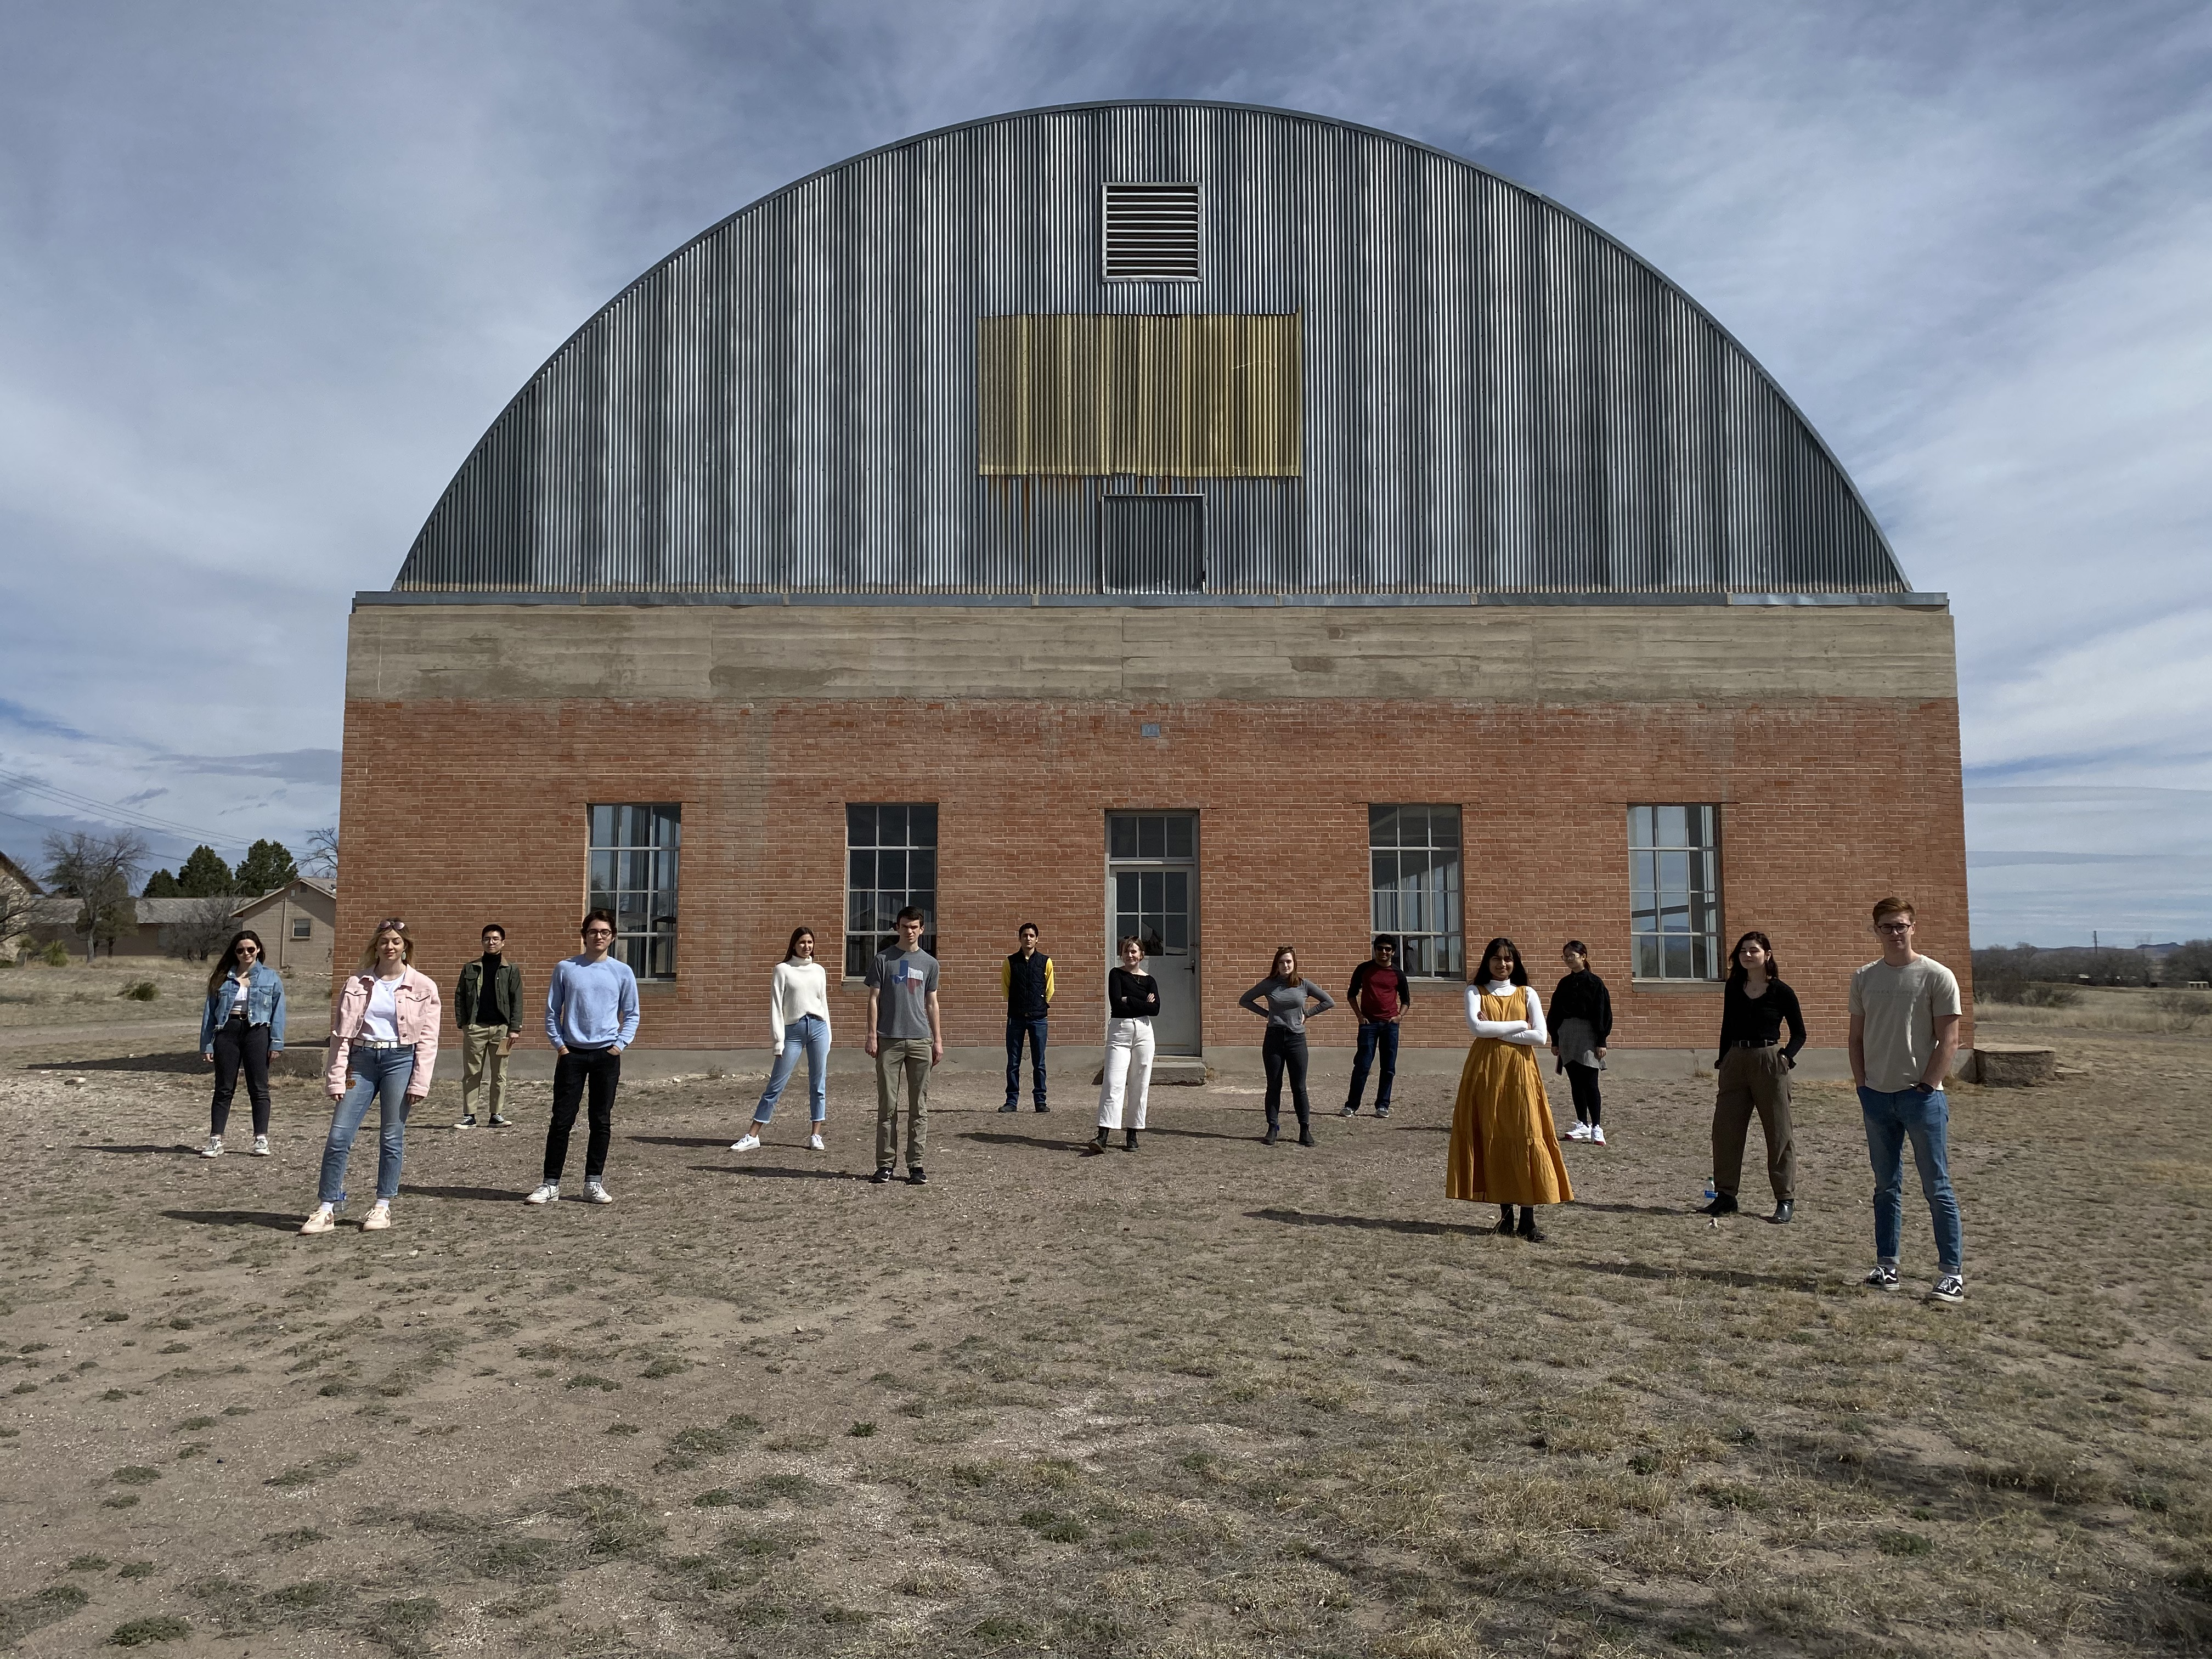 Students standing in front of a round-top building, staggered apart from one another smiling at the camera